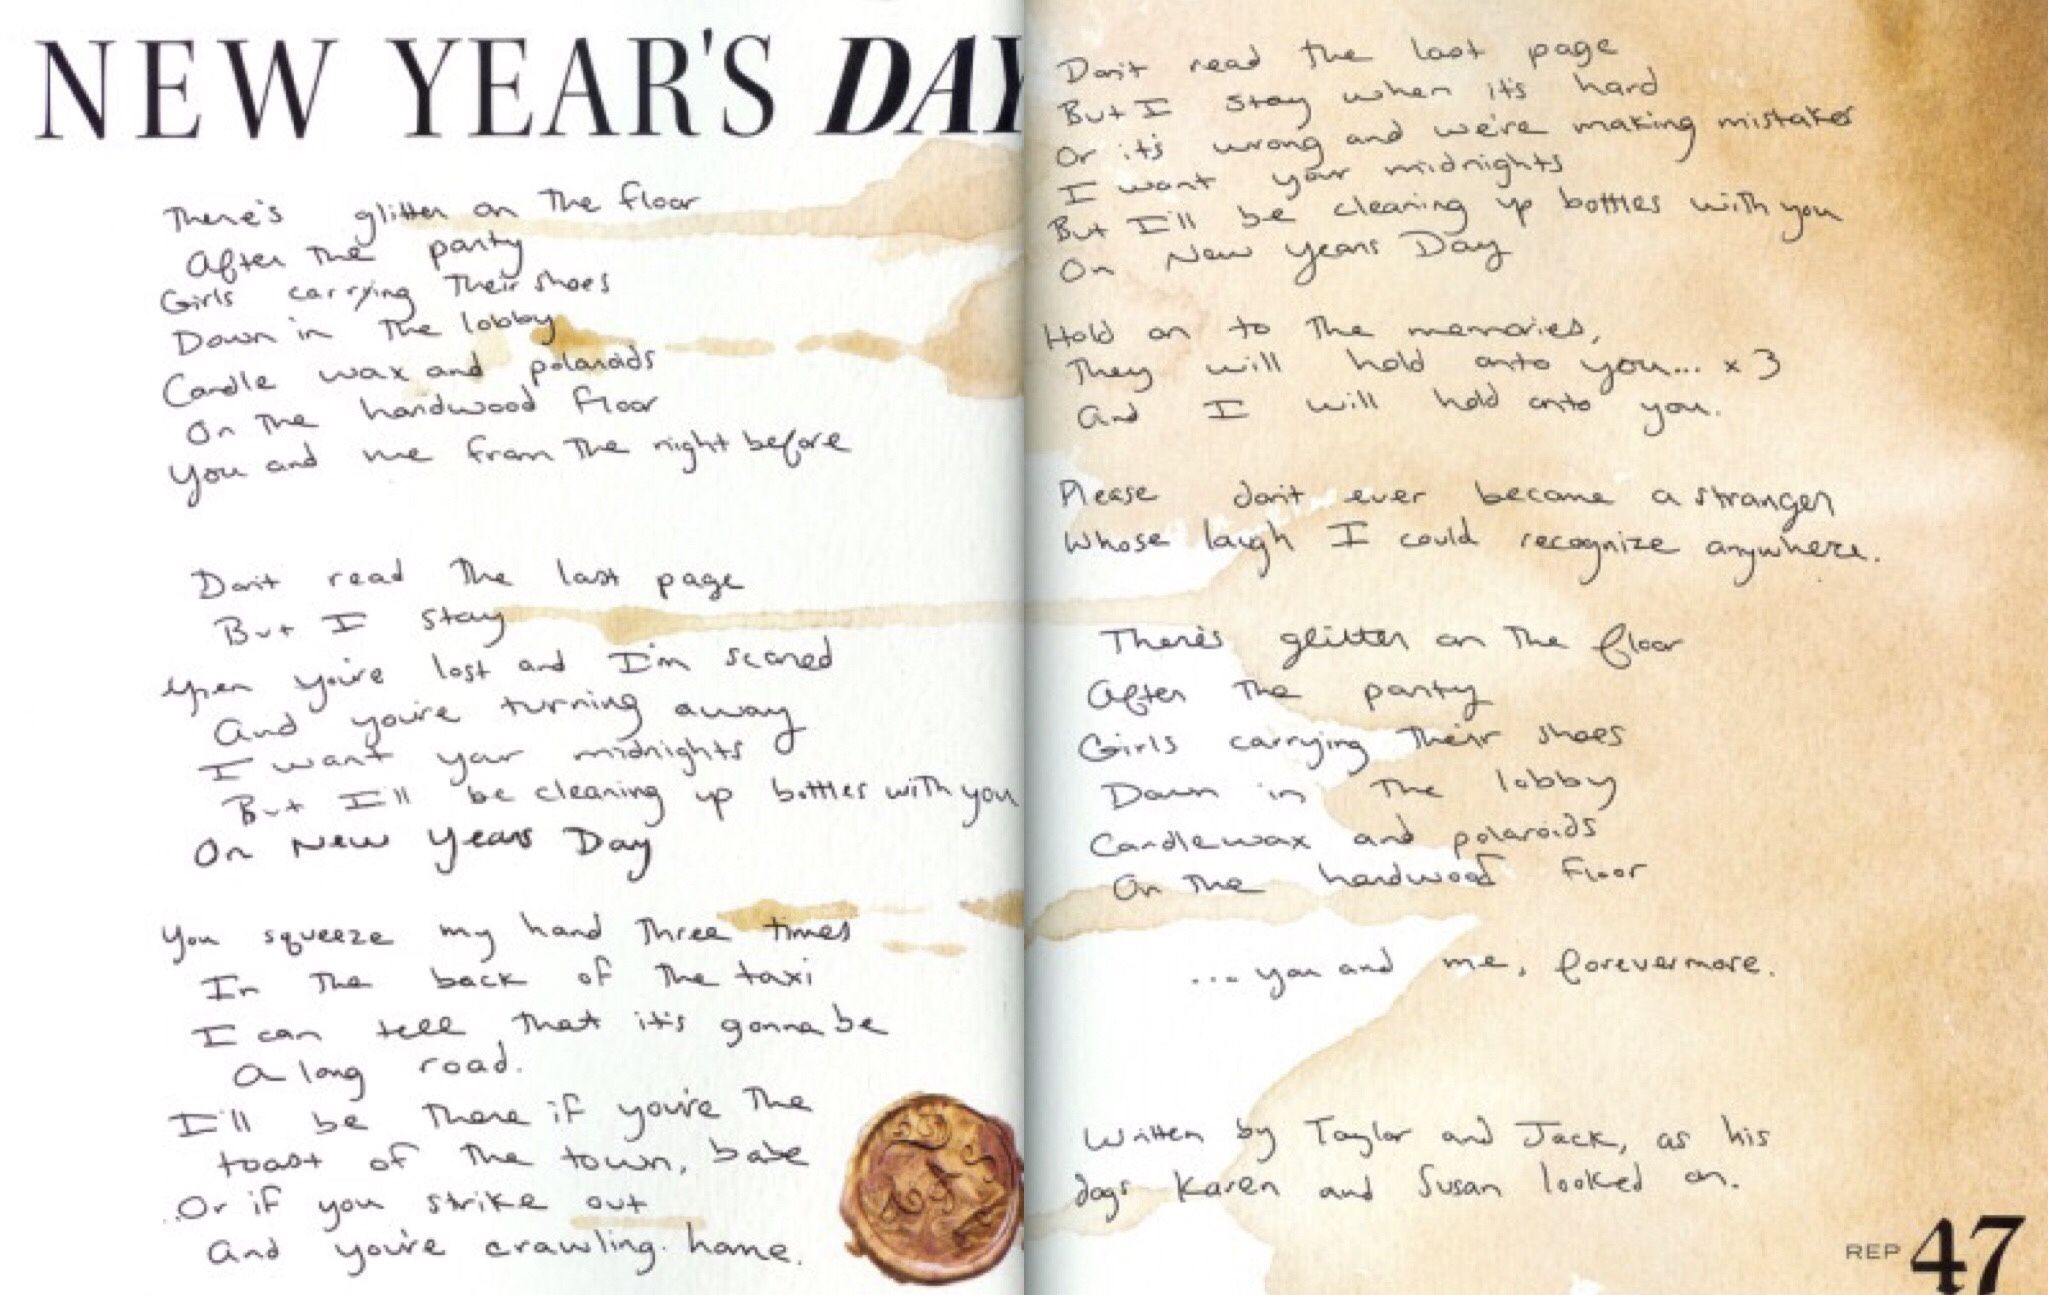 Taylor Swift New Year's Day Taylor swift lyrics